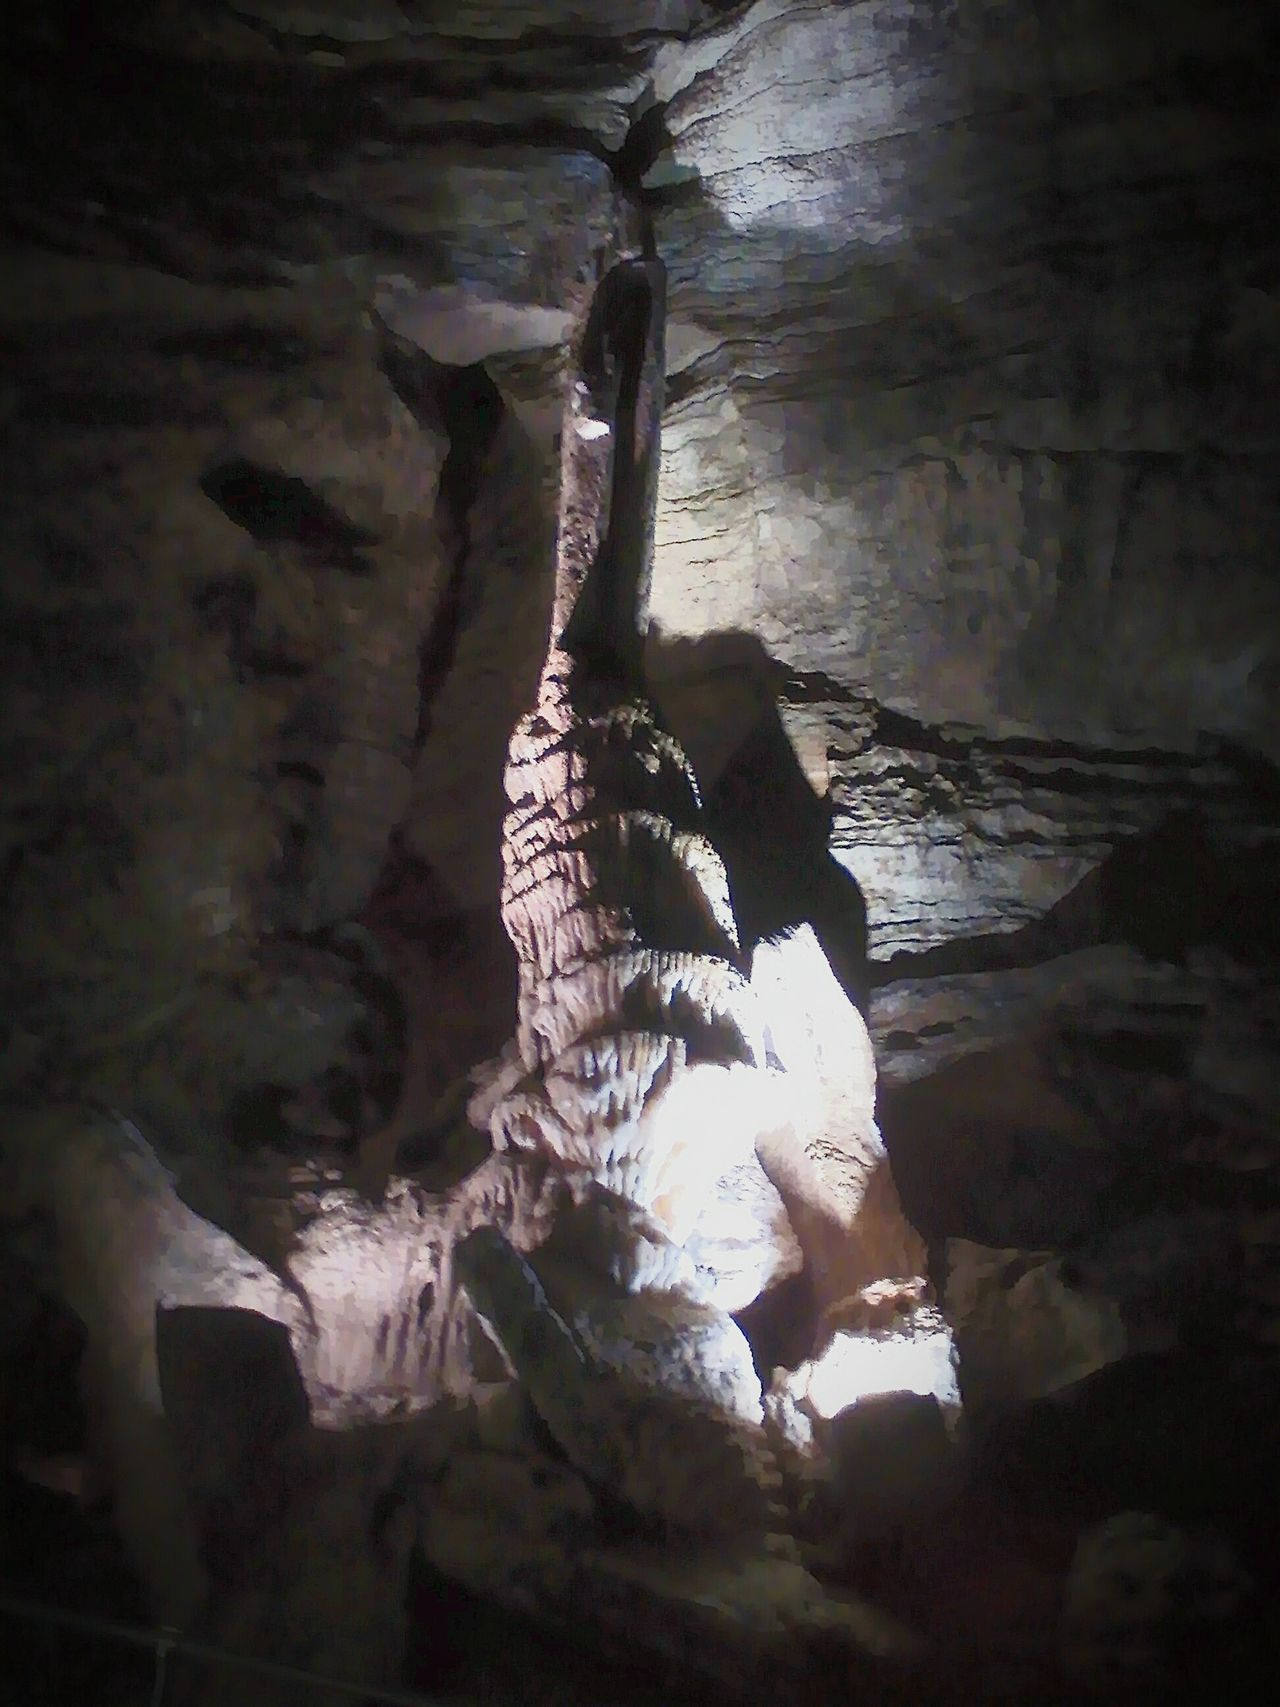 Inside Marvel Cave Ozark Mountains Branson Missouri Notch Missouri Silver Dollar Ciy Cavern Streamzoofamily My Year My View